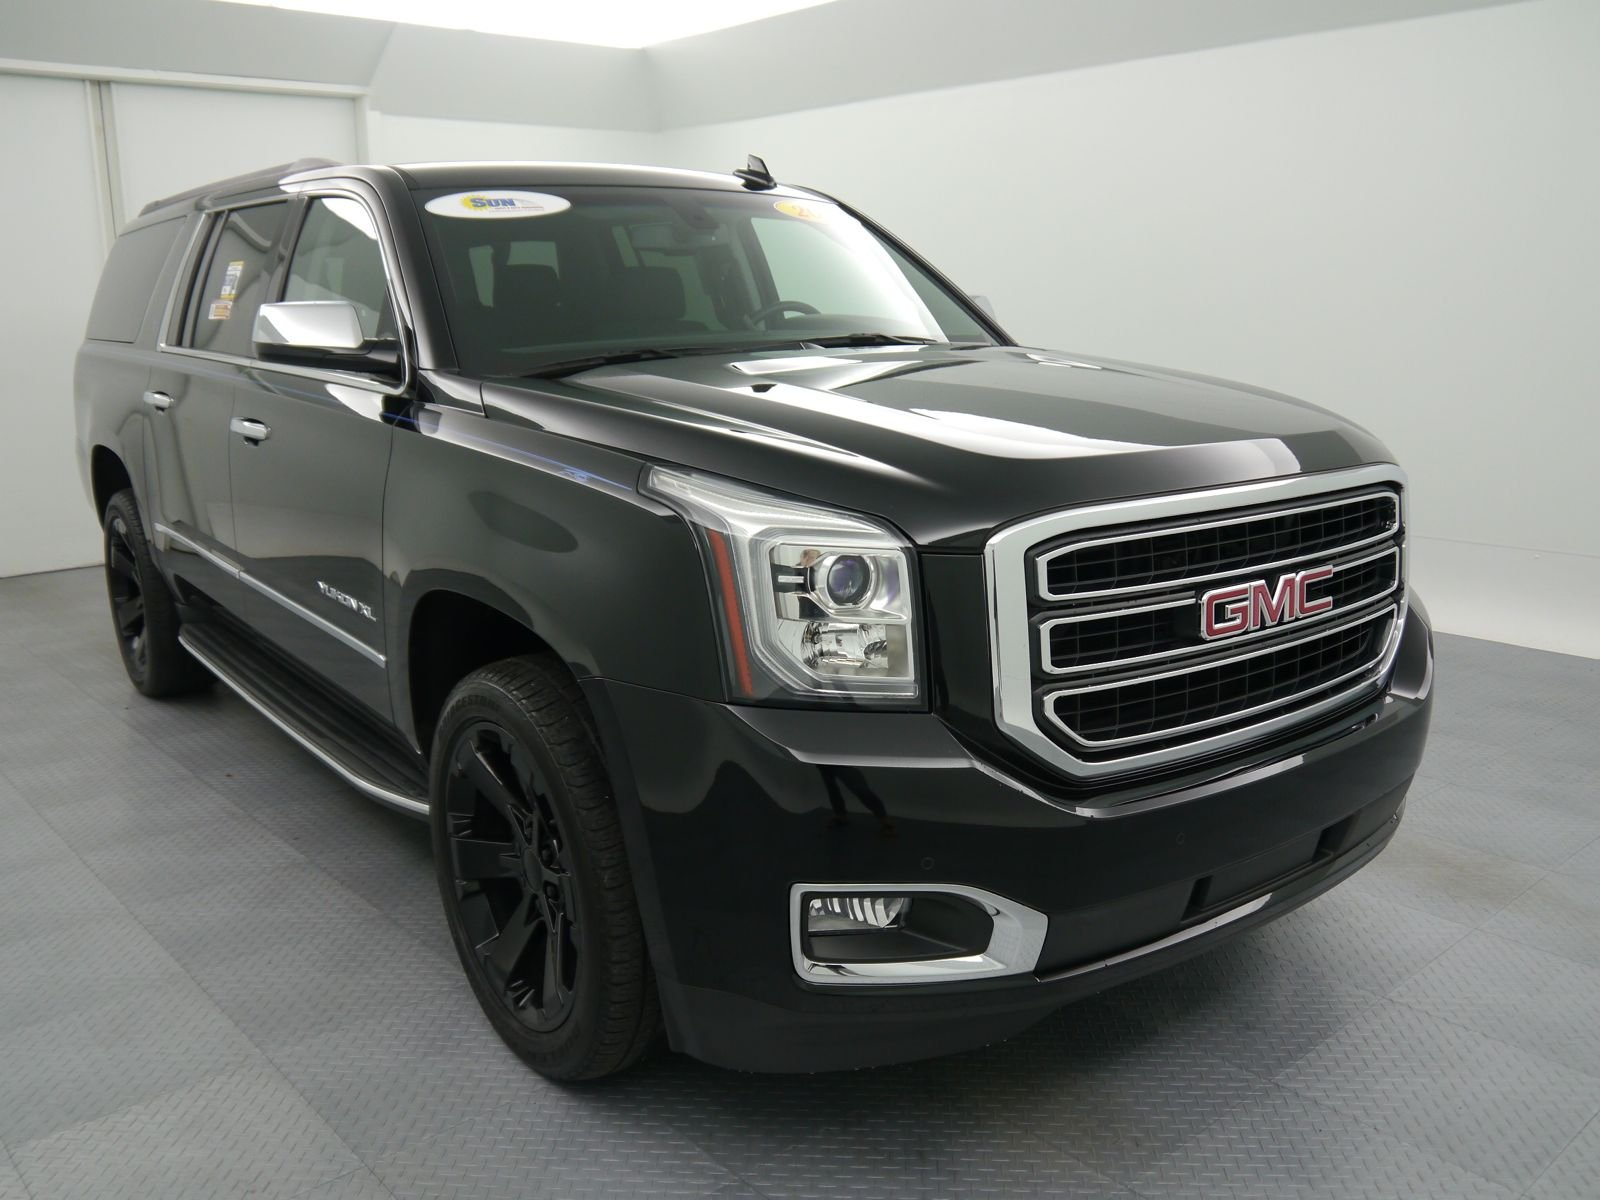 pre owned 2015 gmc yukon xl sle sport utility cicero wt31487 cicero ny used car king. Black Bedroom Furniture Sets. Home Design Ideas